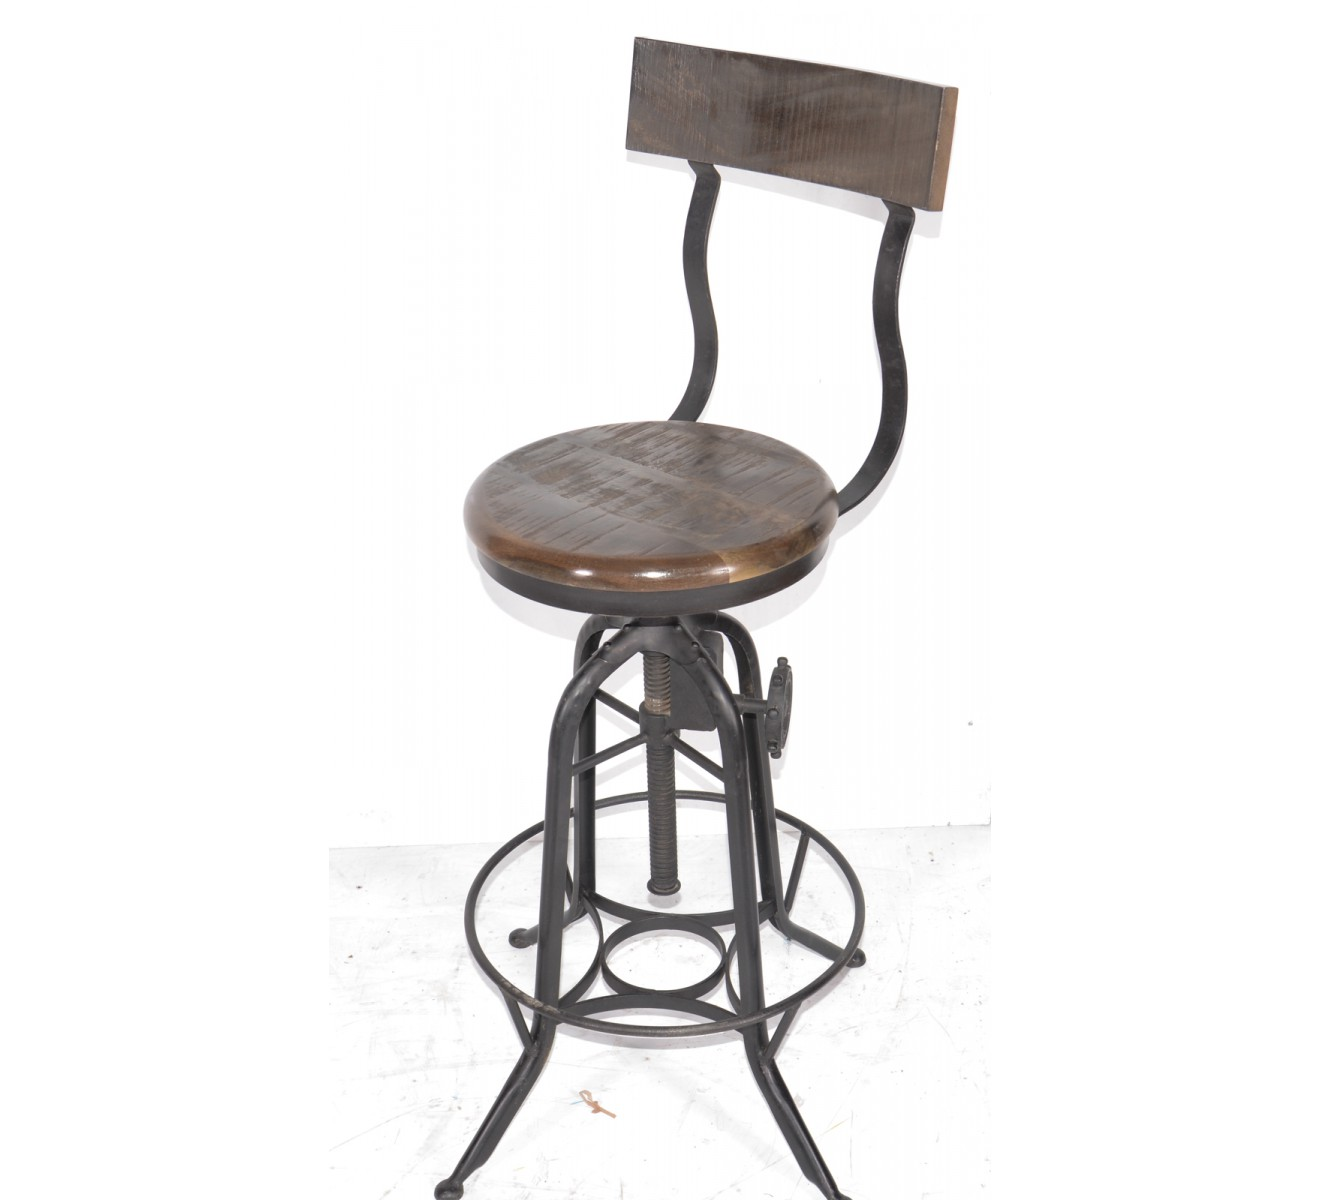 tabouret de bar industriel r glable avec dossier 39 atelier grey 39. Black Bedroom Furniture Sets. Home Design Ideas